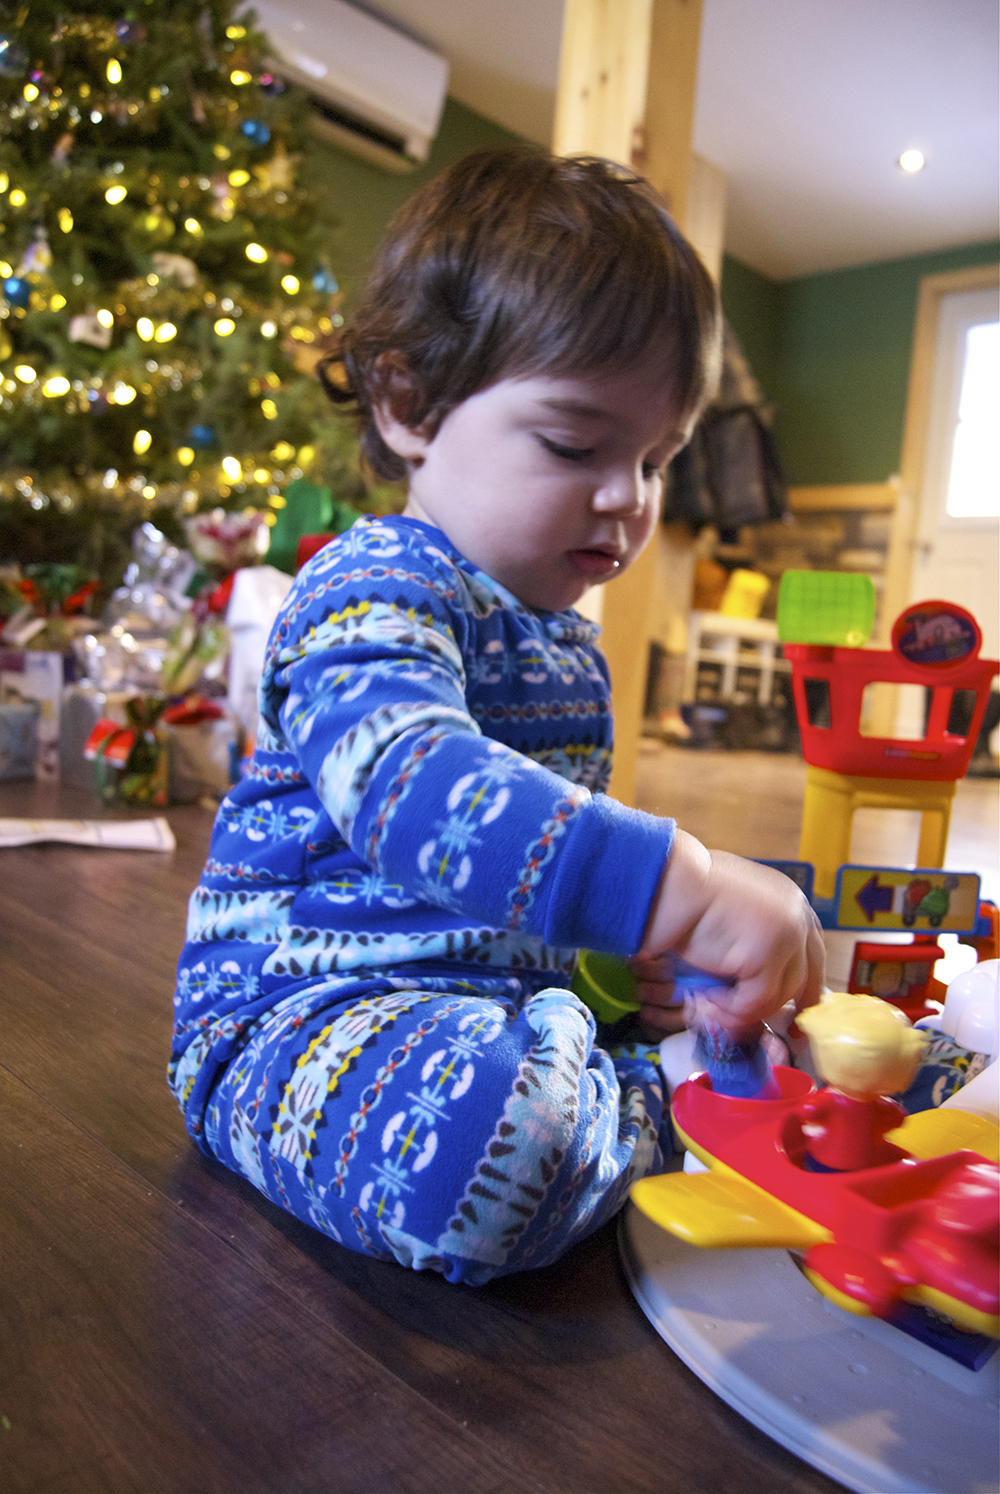 Playing with his new LittlePeople airport from the Carters